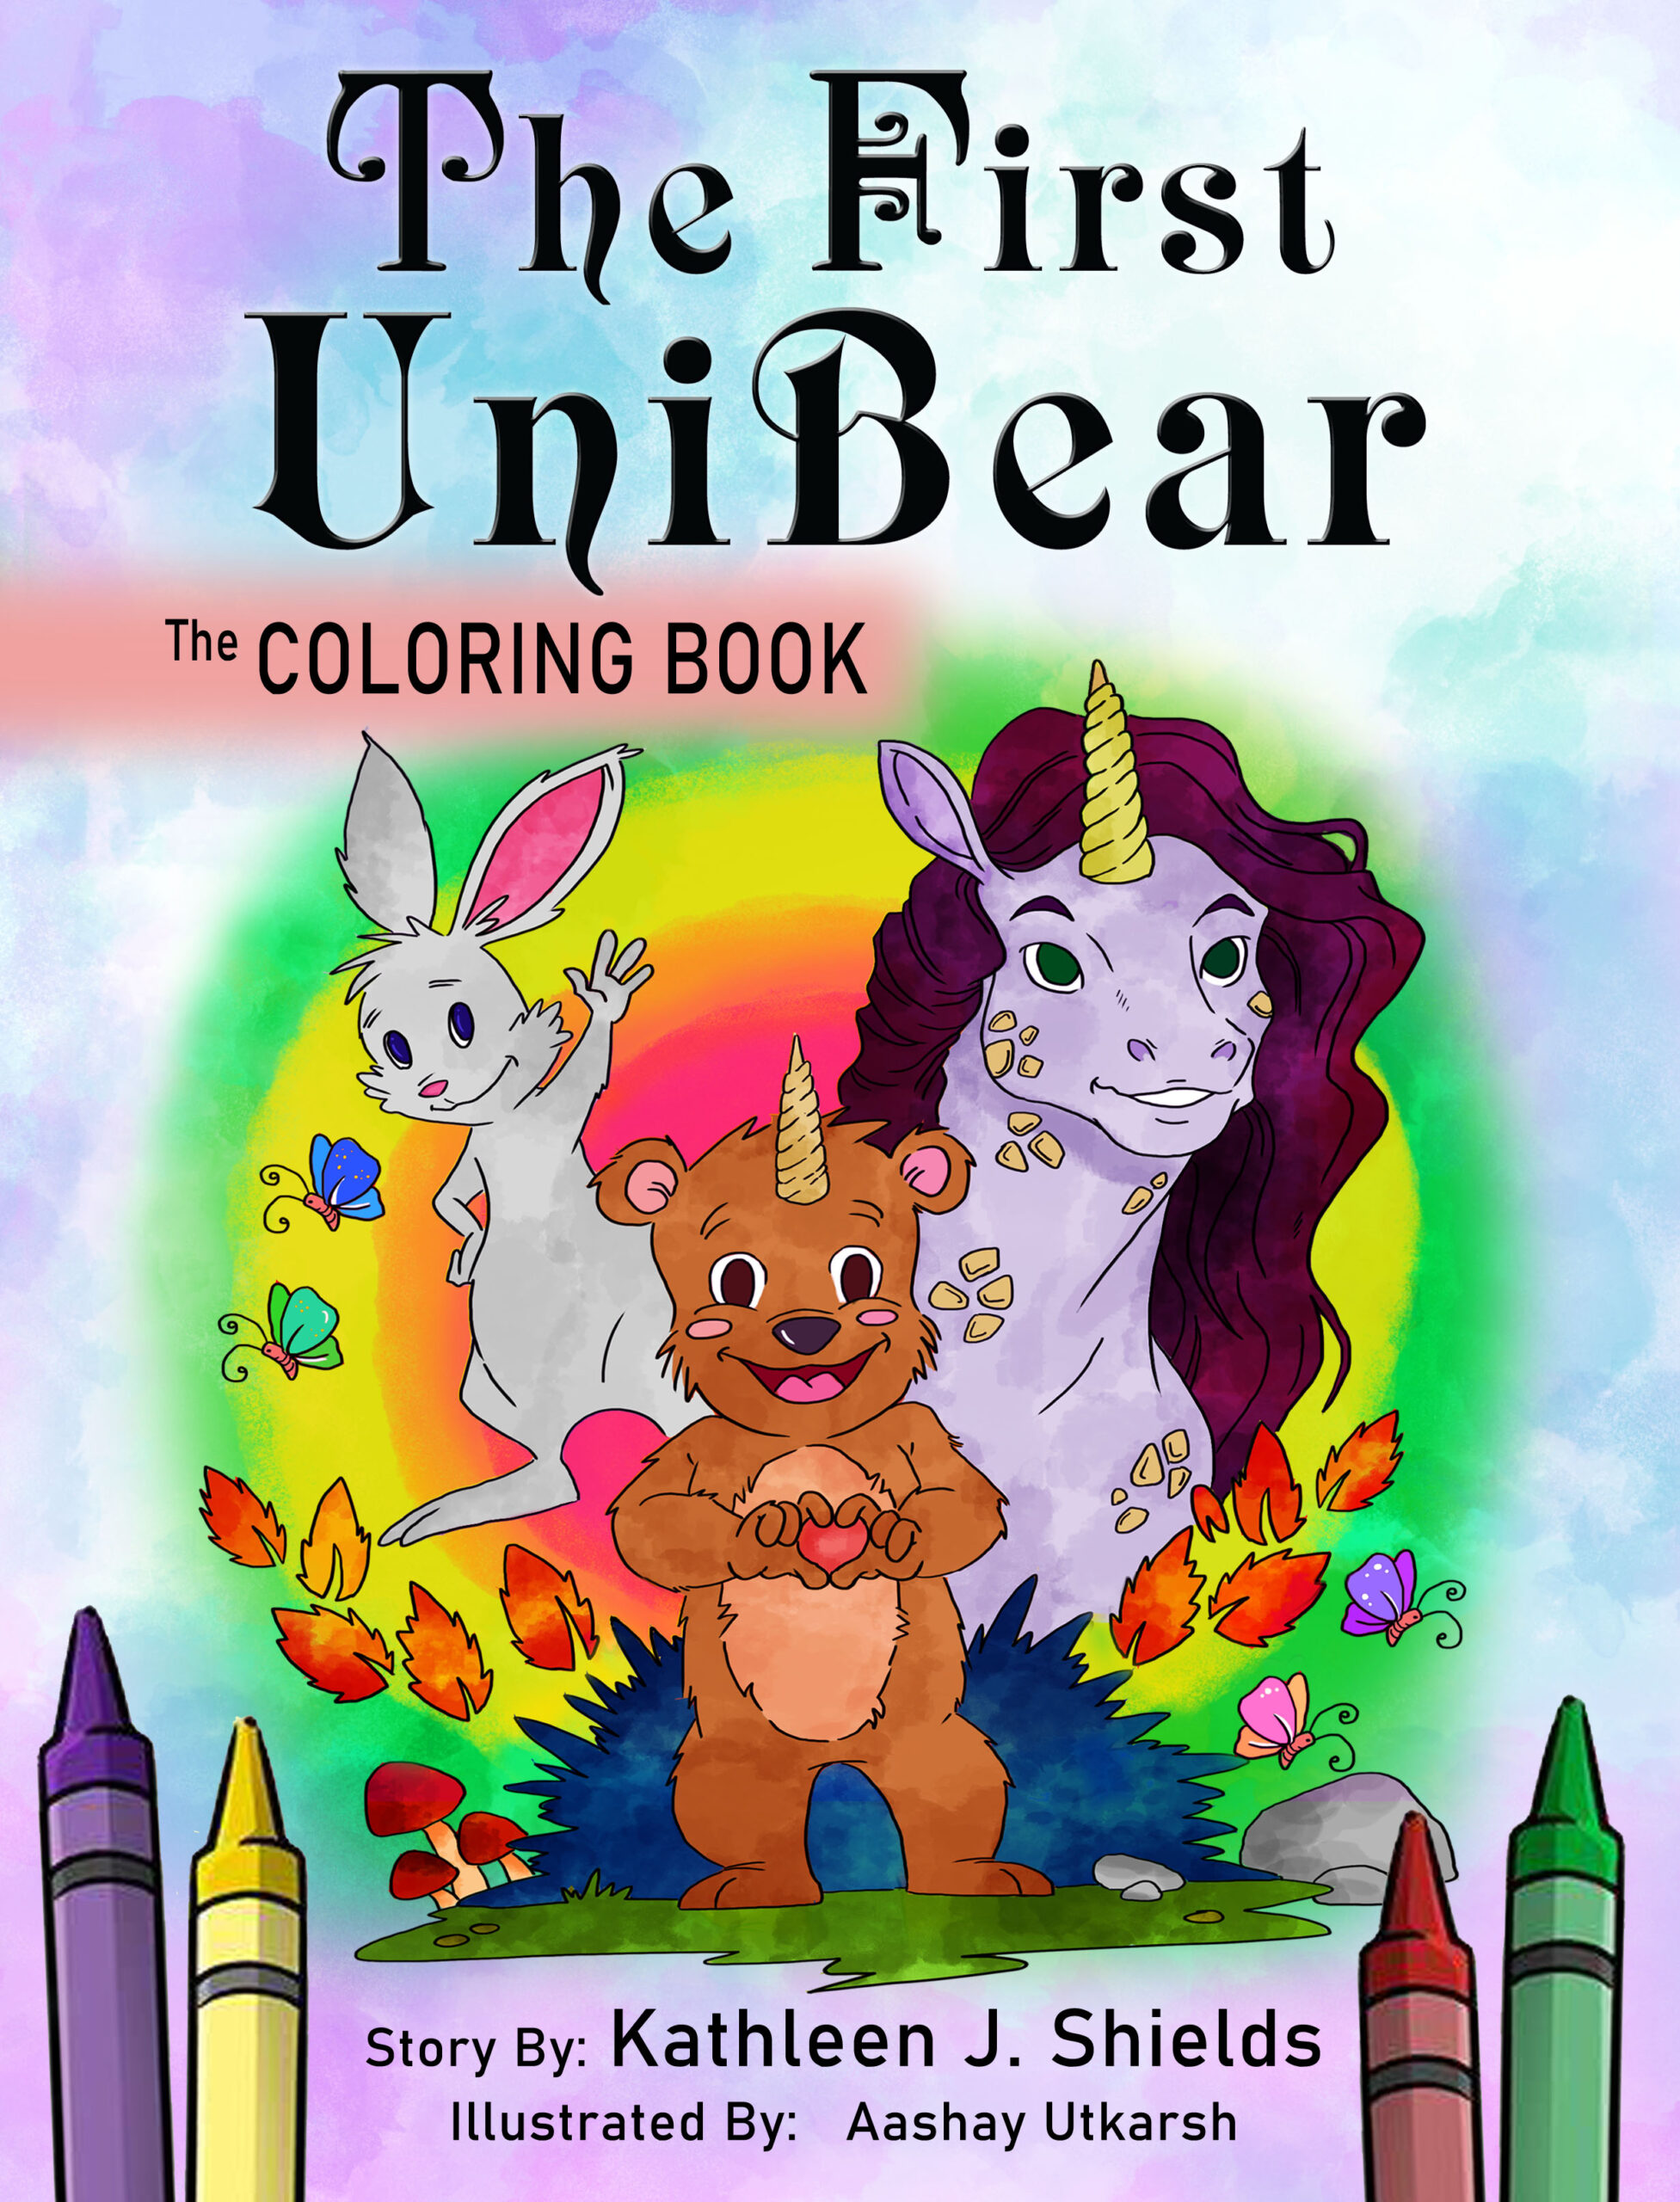 The First Unibear Rhyming Illustrated Story and Coloring Book by author Kathleen J. Shields